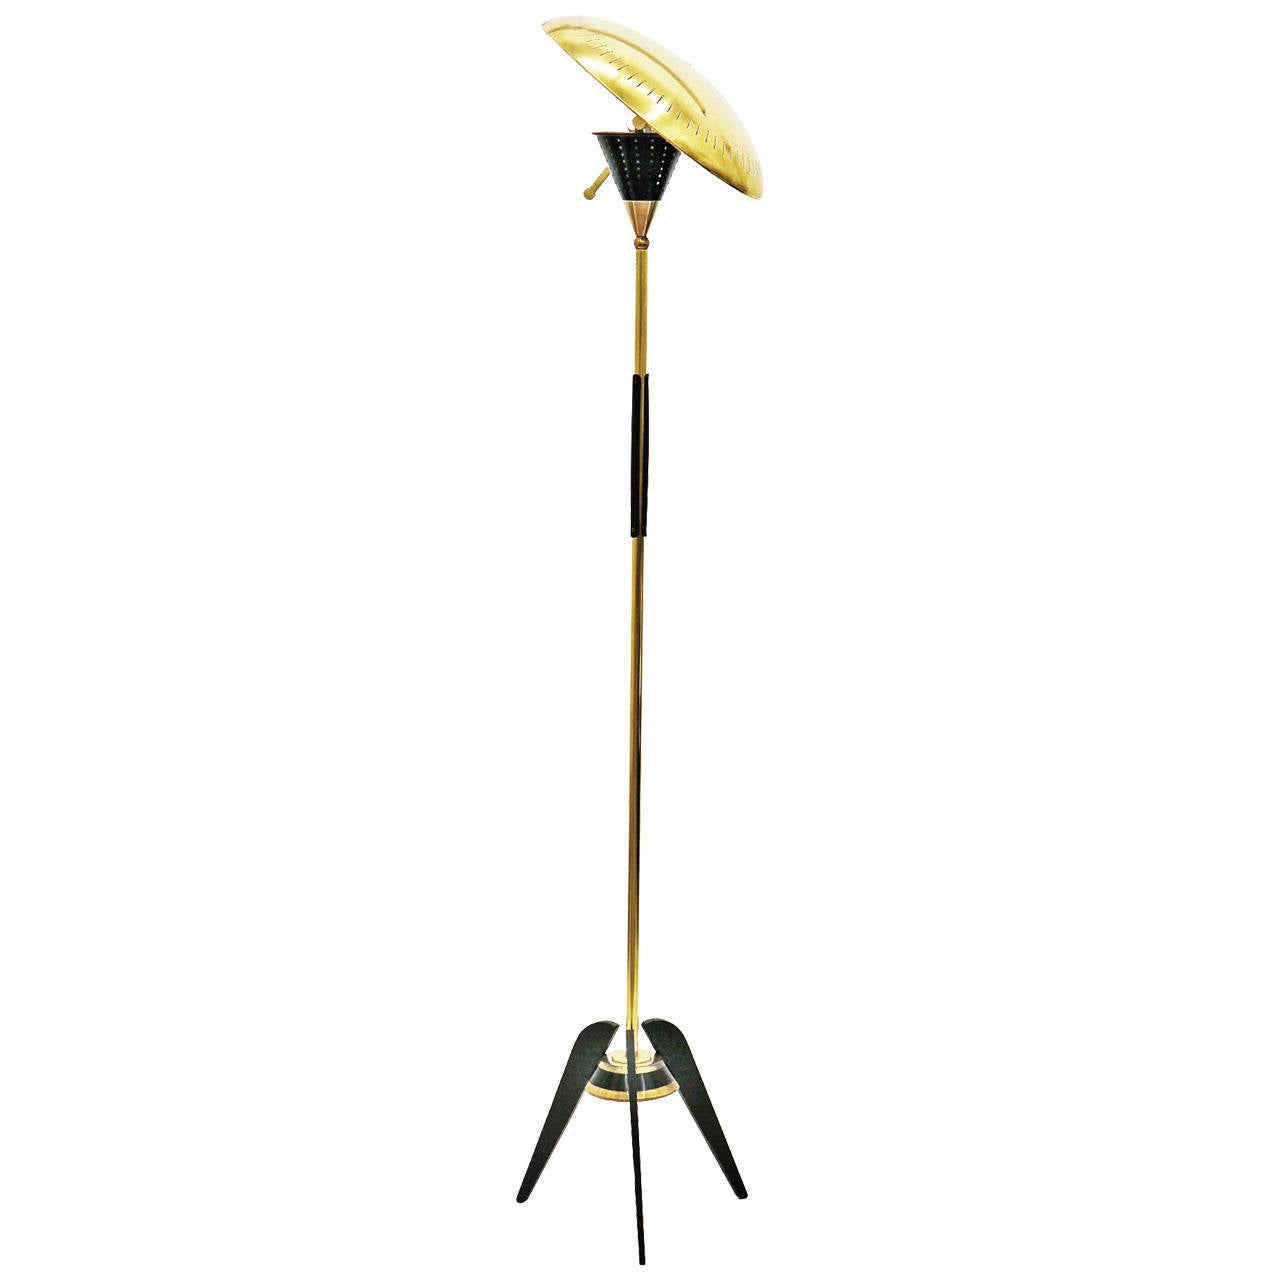 Unique Floor Lamps For Sale Unique Brass Floor Lamp With Perforated Shade For Sale At